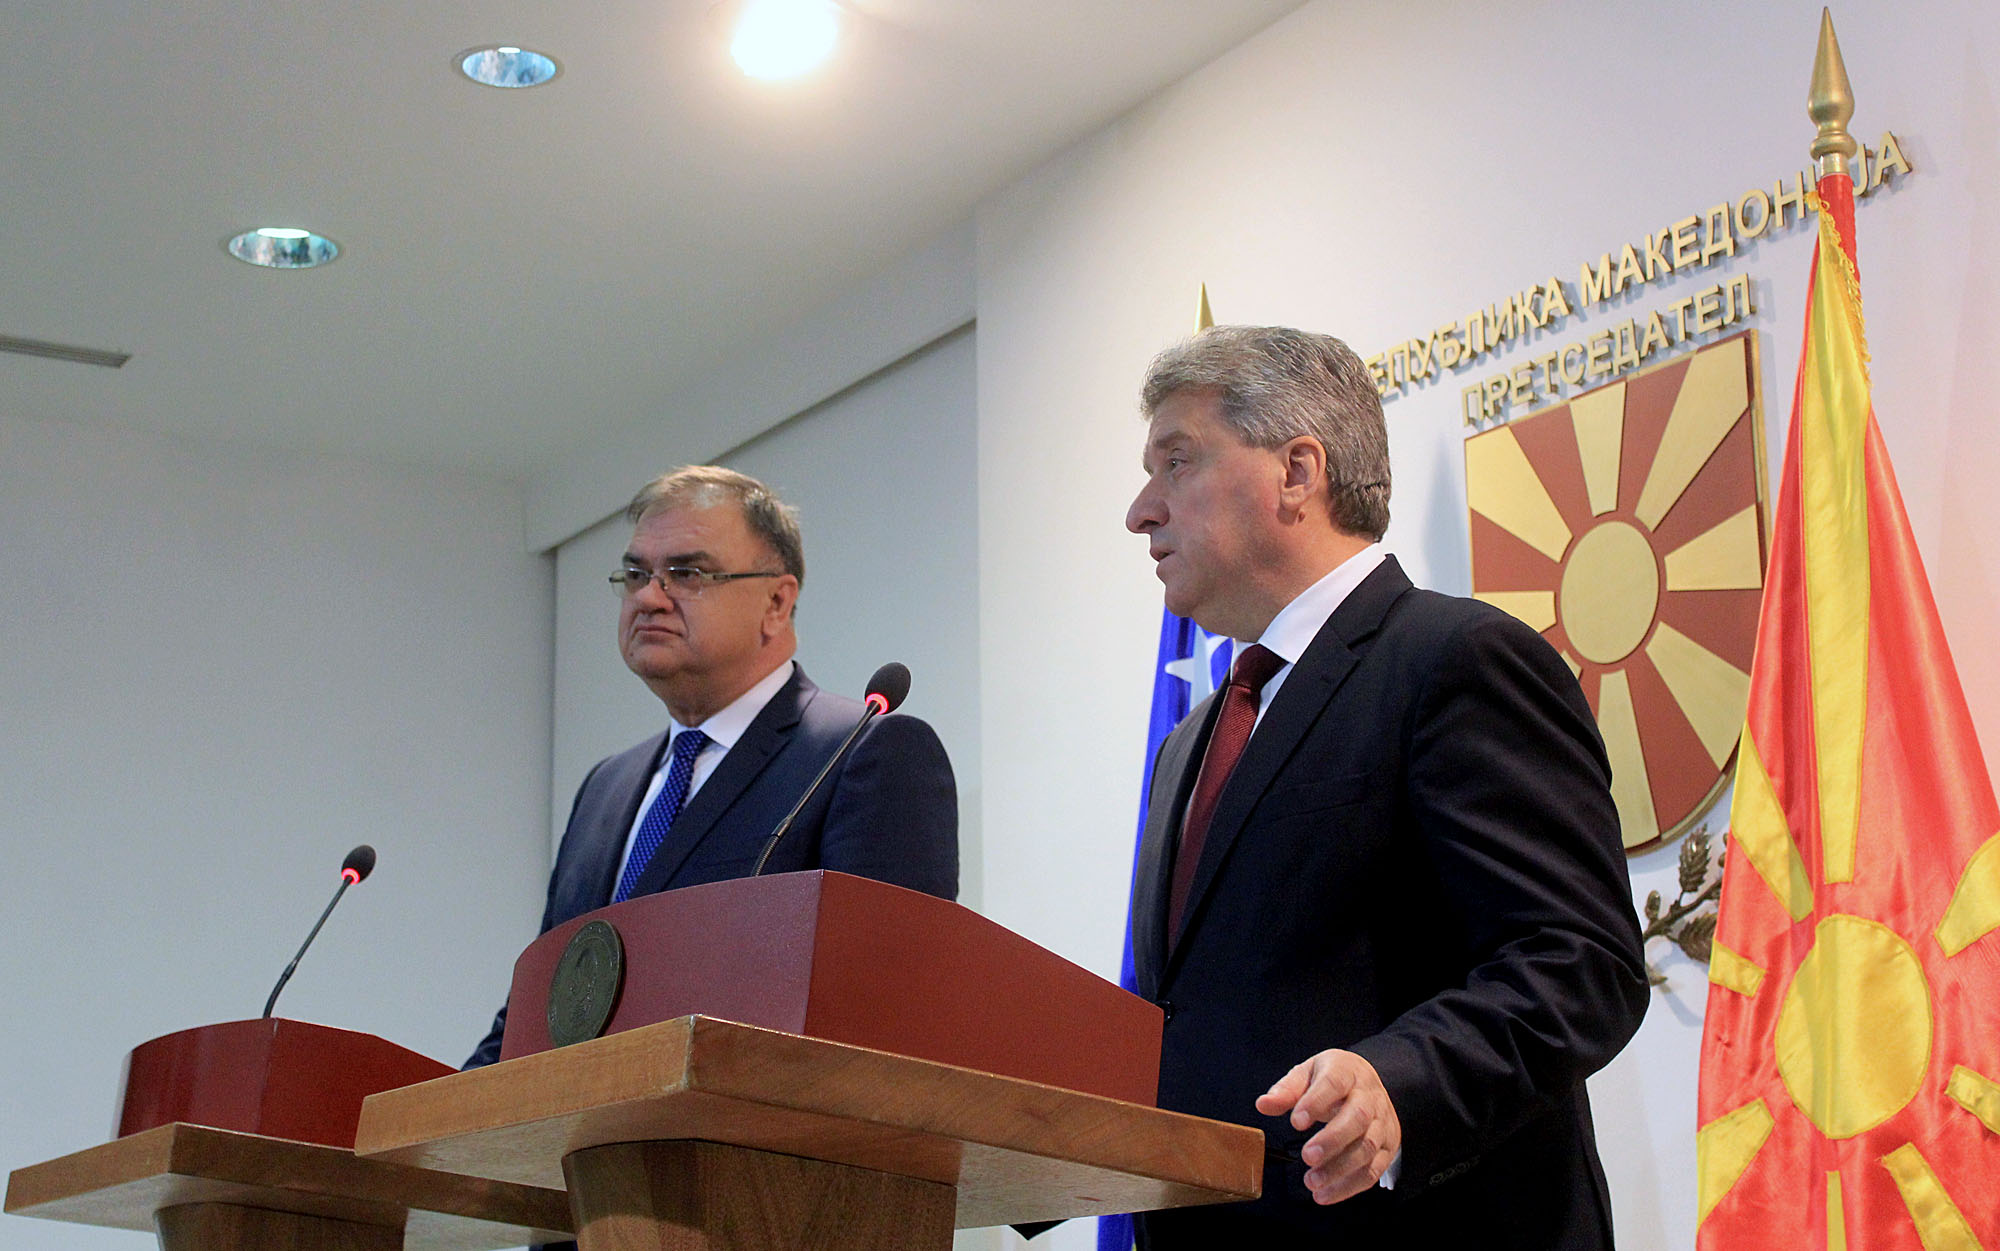 USA and EU send strong messages about the crisis in FYROM